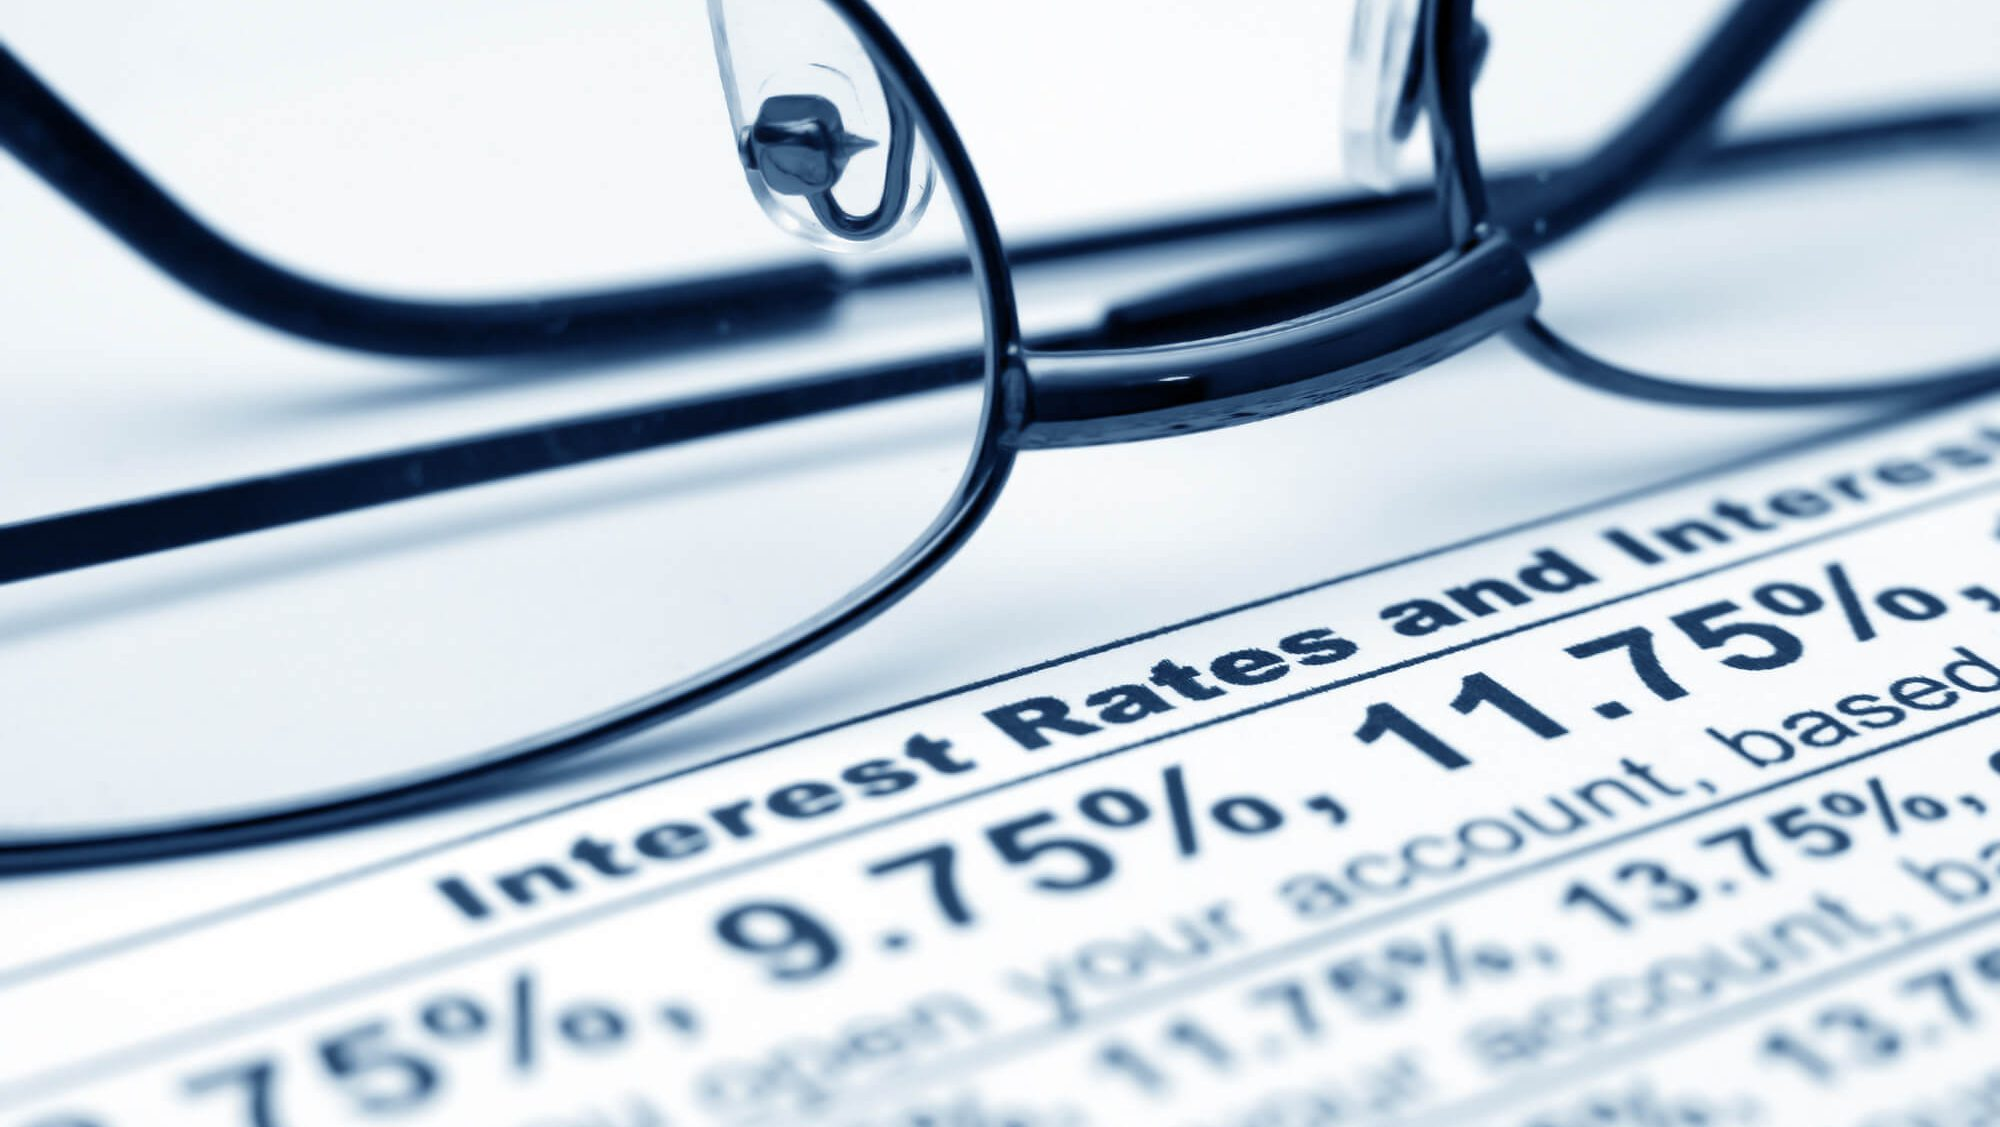 What Are The Typical Rates For A Payday Loan